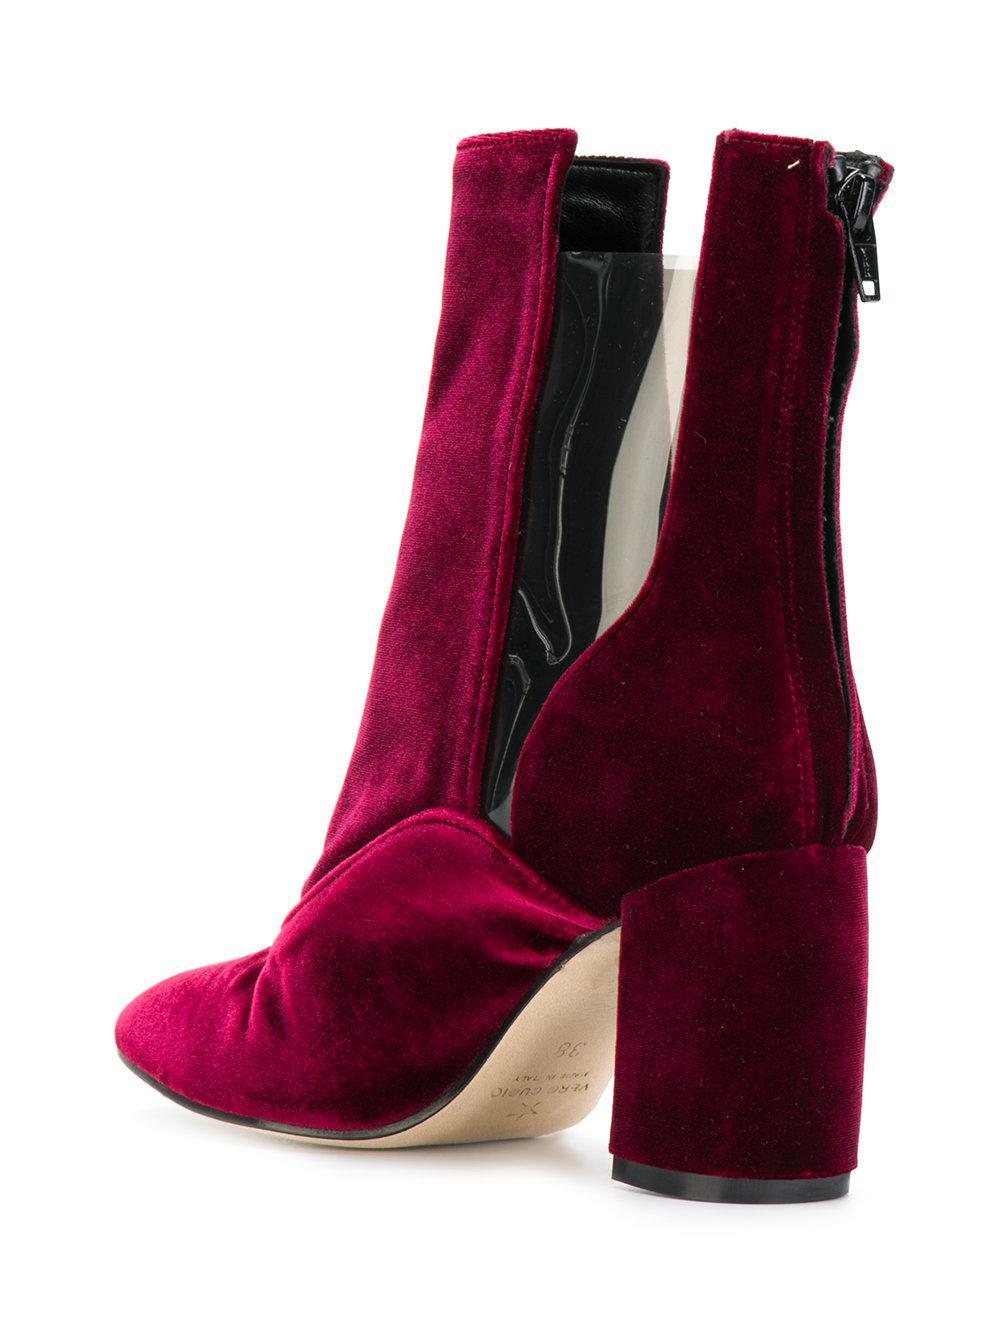 MARC ELLIS Purple Suede Ankle Boots Free Shipping New Styles Cheap Sale Marketable YSqEEZ